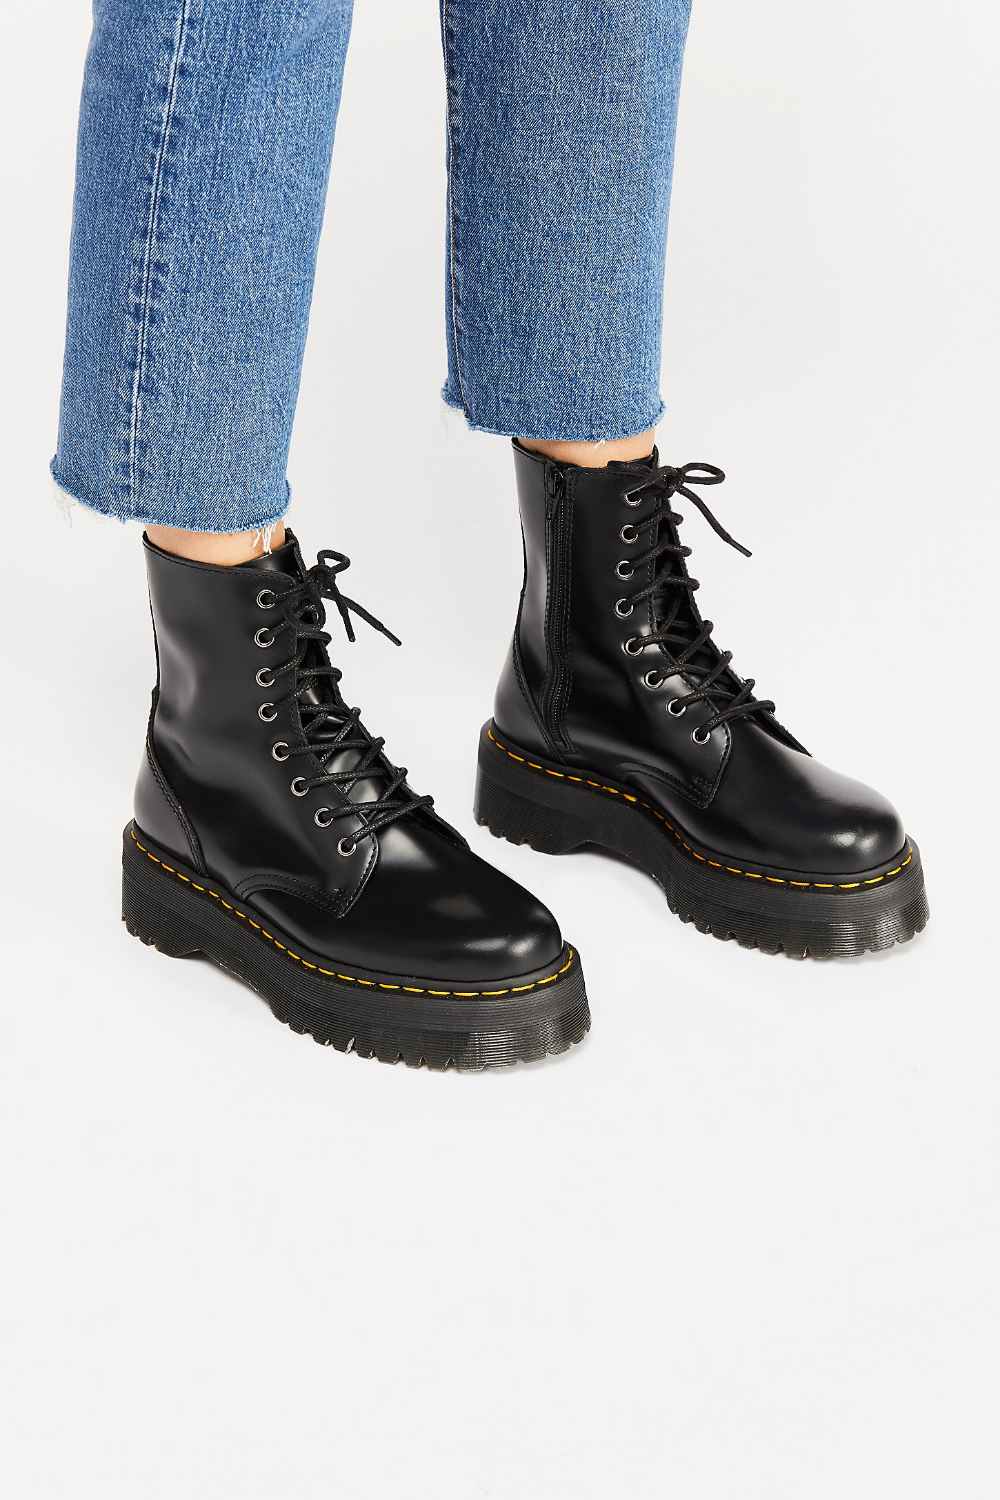 Dr. Martens Jadon Lace Up Boot in 2019 | Doc martens boots